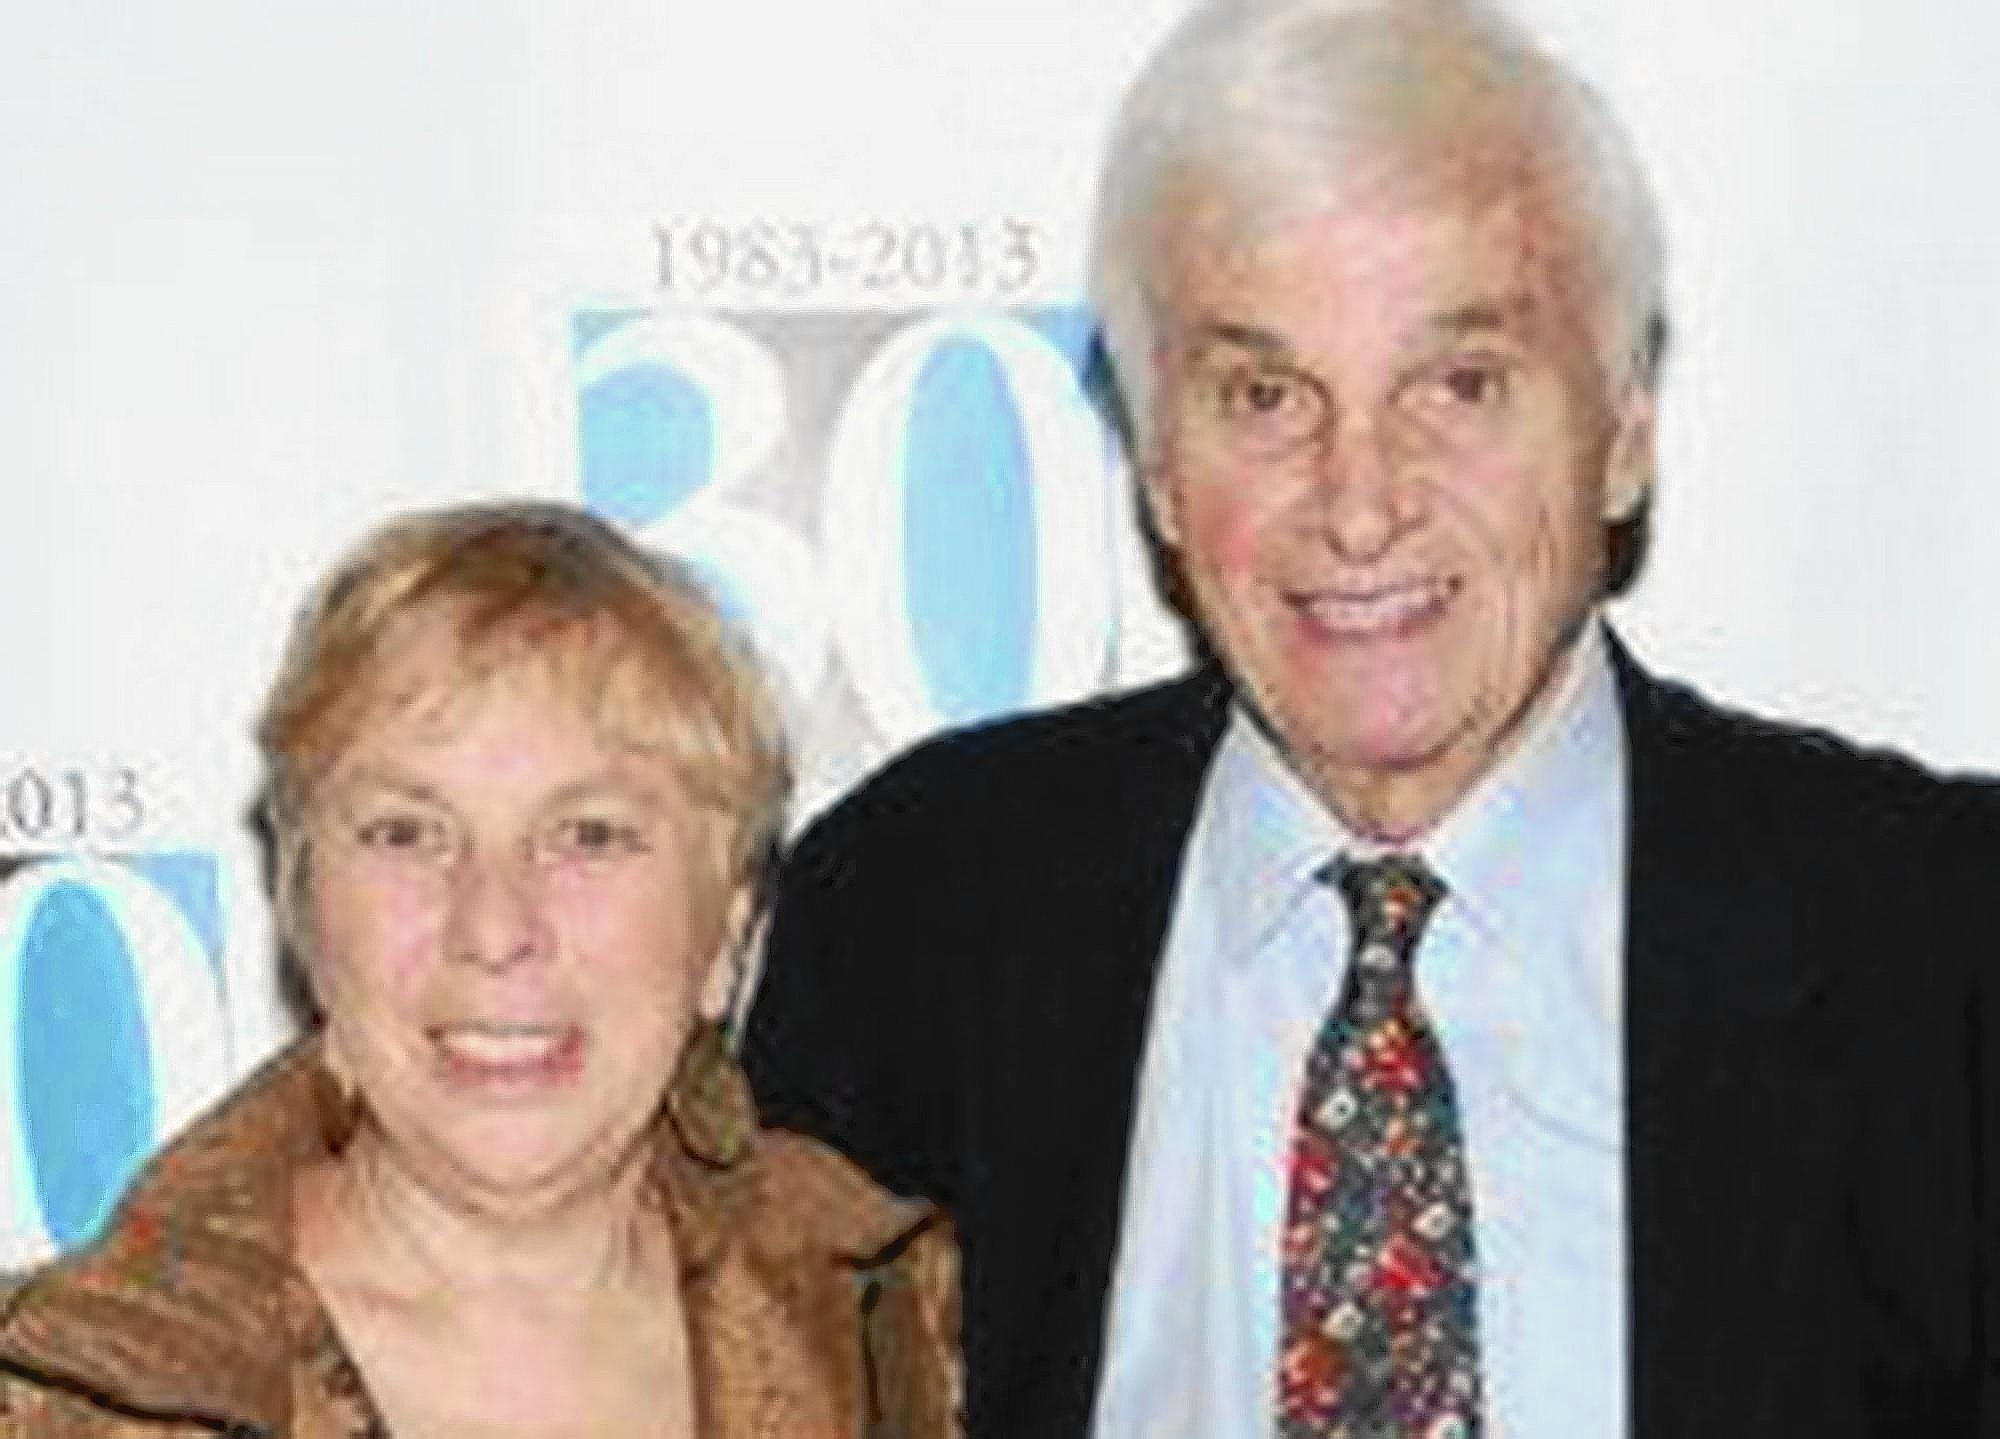 Gene Estess, a broker who gave up the pay and perks of Wall Street for a second career with the Jericho Project, a social-service organization helping New York City's homeless, has died at 78. Estess is pictured with his wife, Pat Schiff Estess.